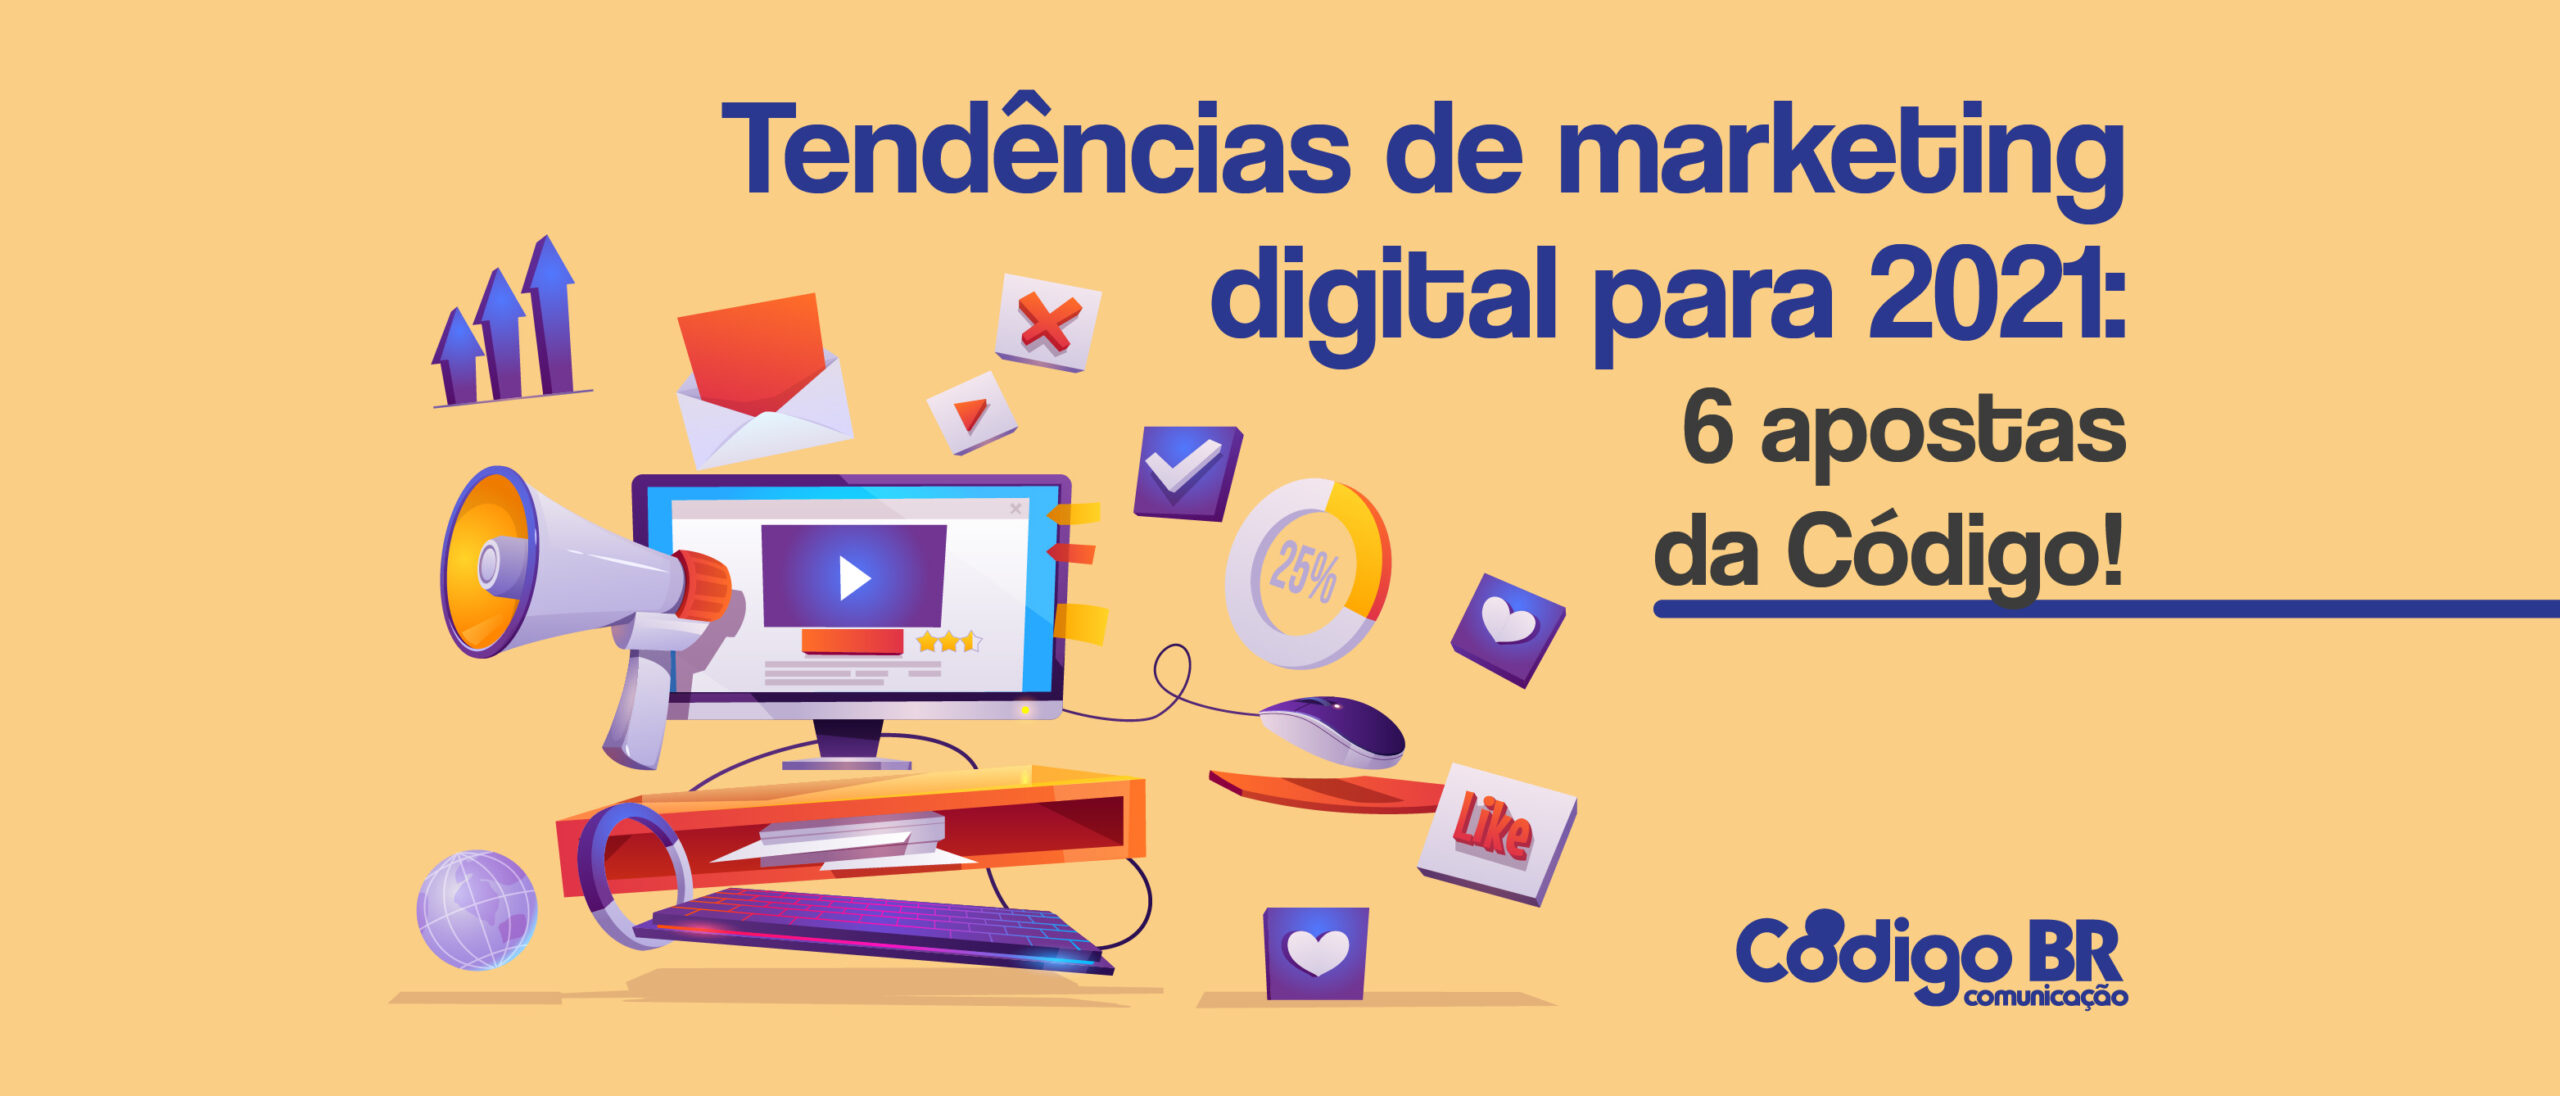 Apostas da Codigo para marketing digital para 2021